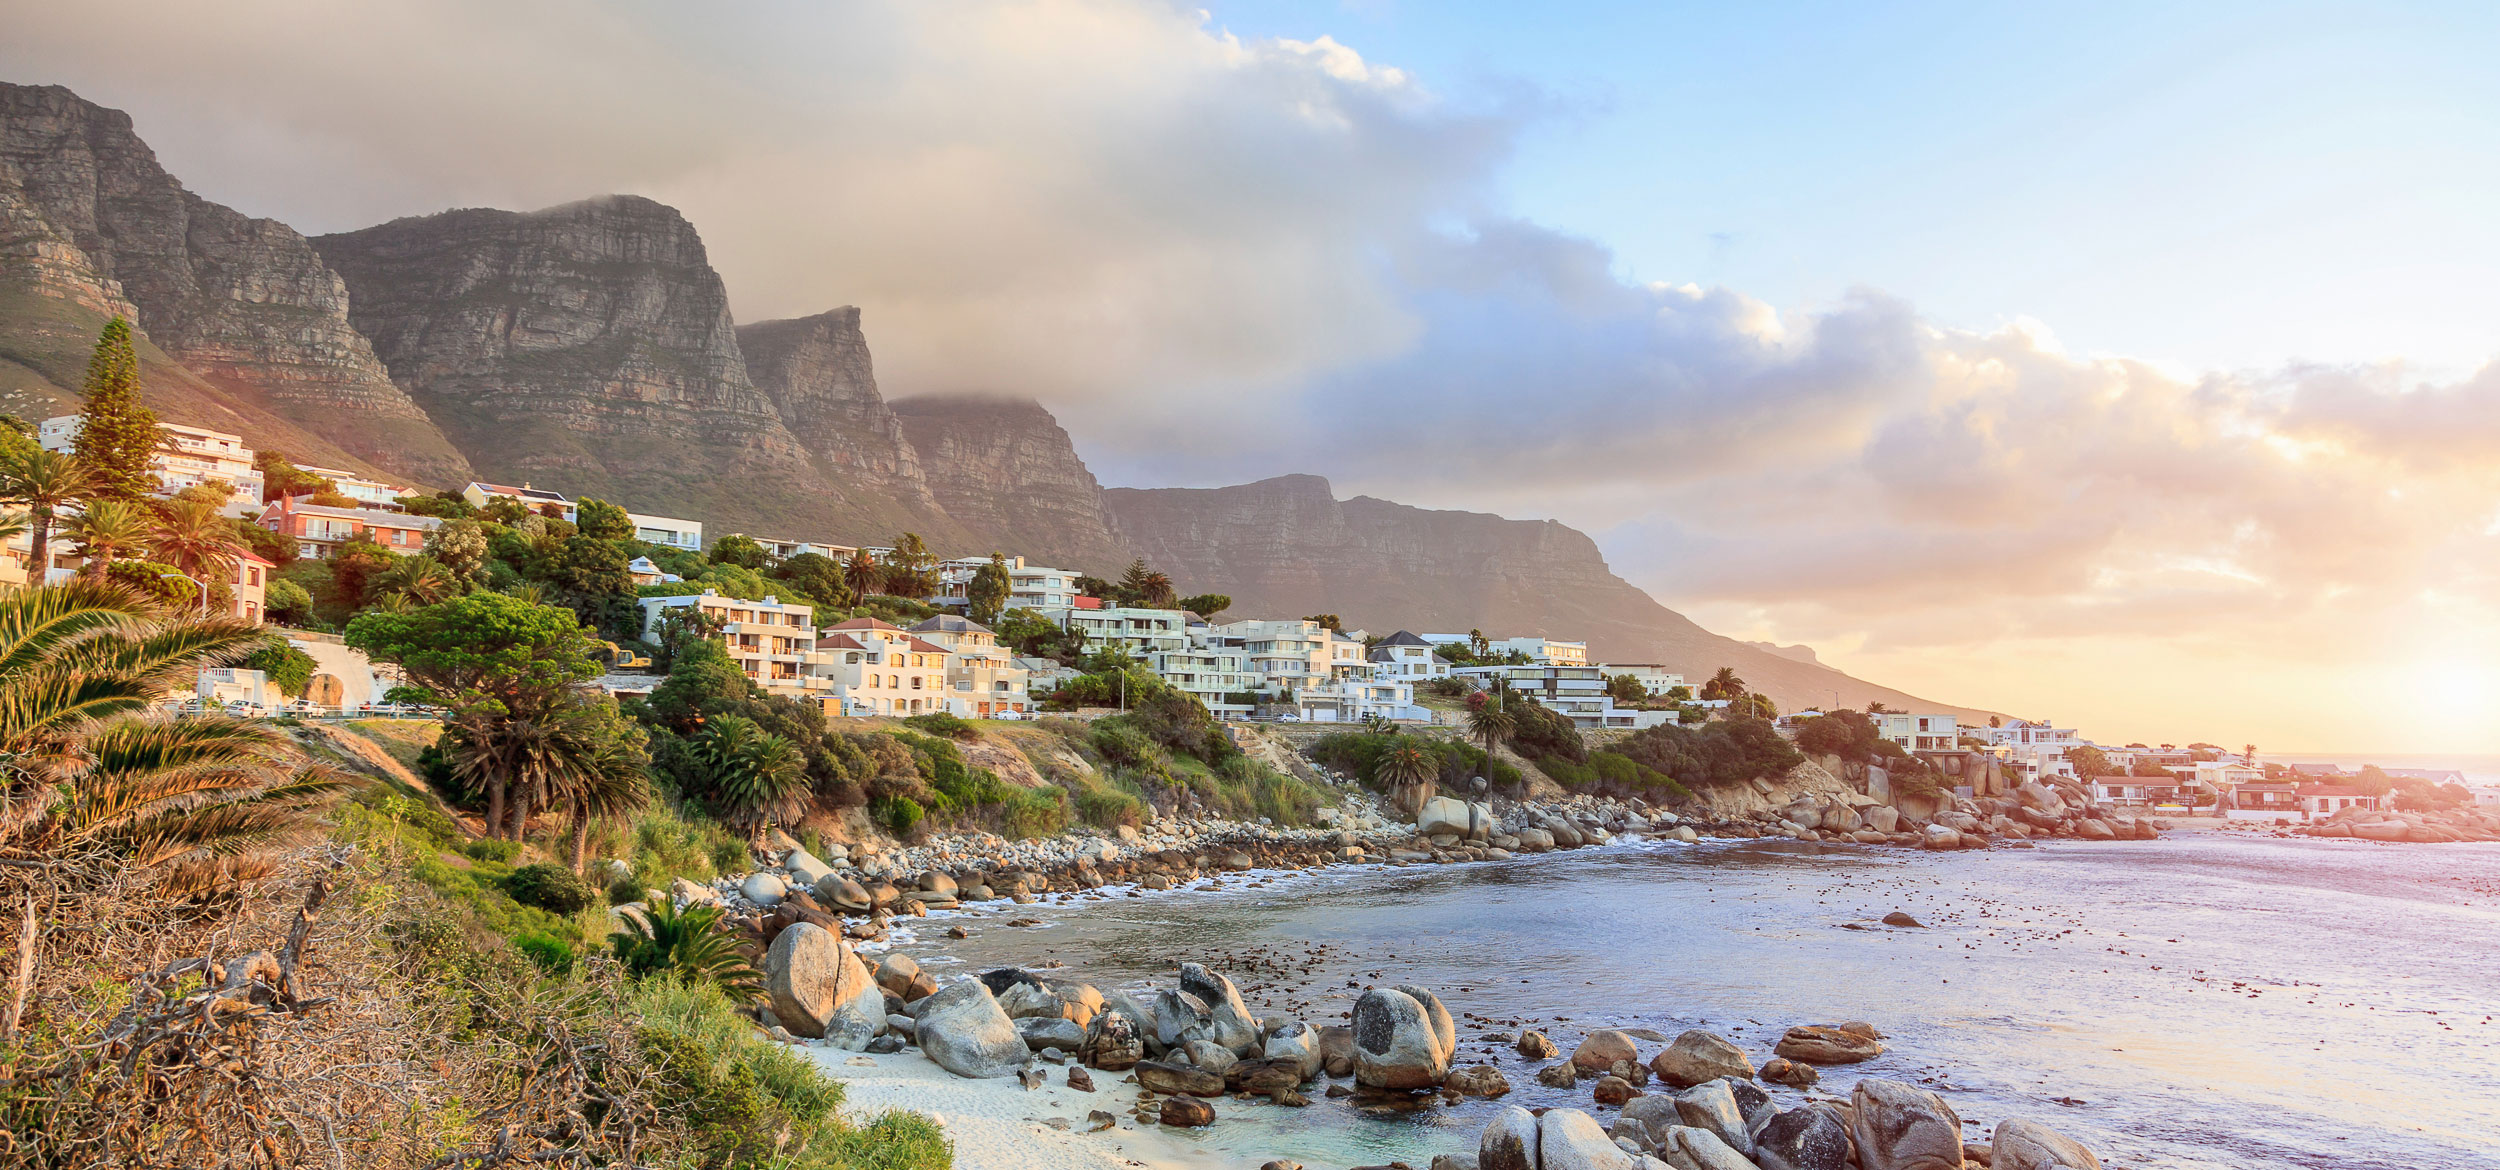 An aerial view of Cape Town Camps Bay with houses, ocean, and mountains in the background in Cape Town, South Africa.